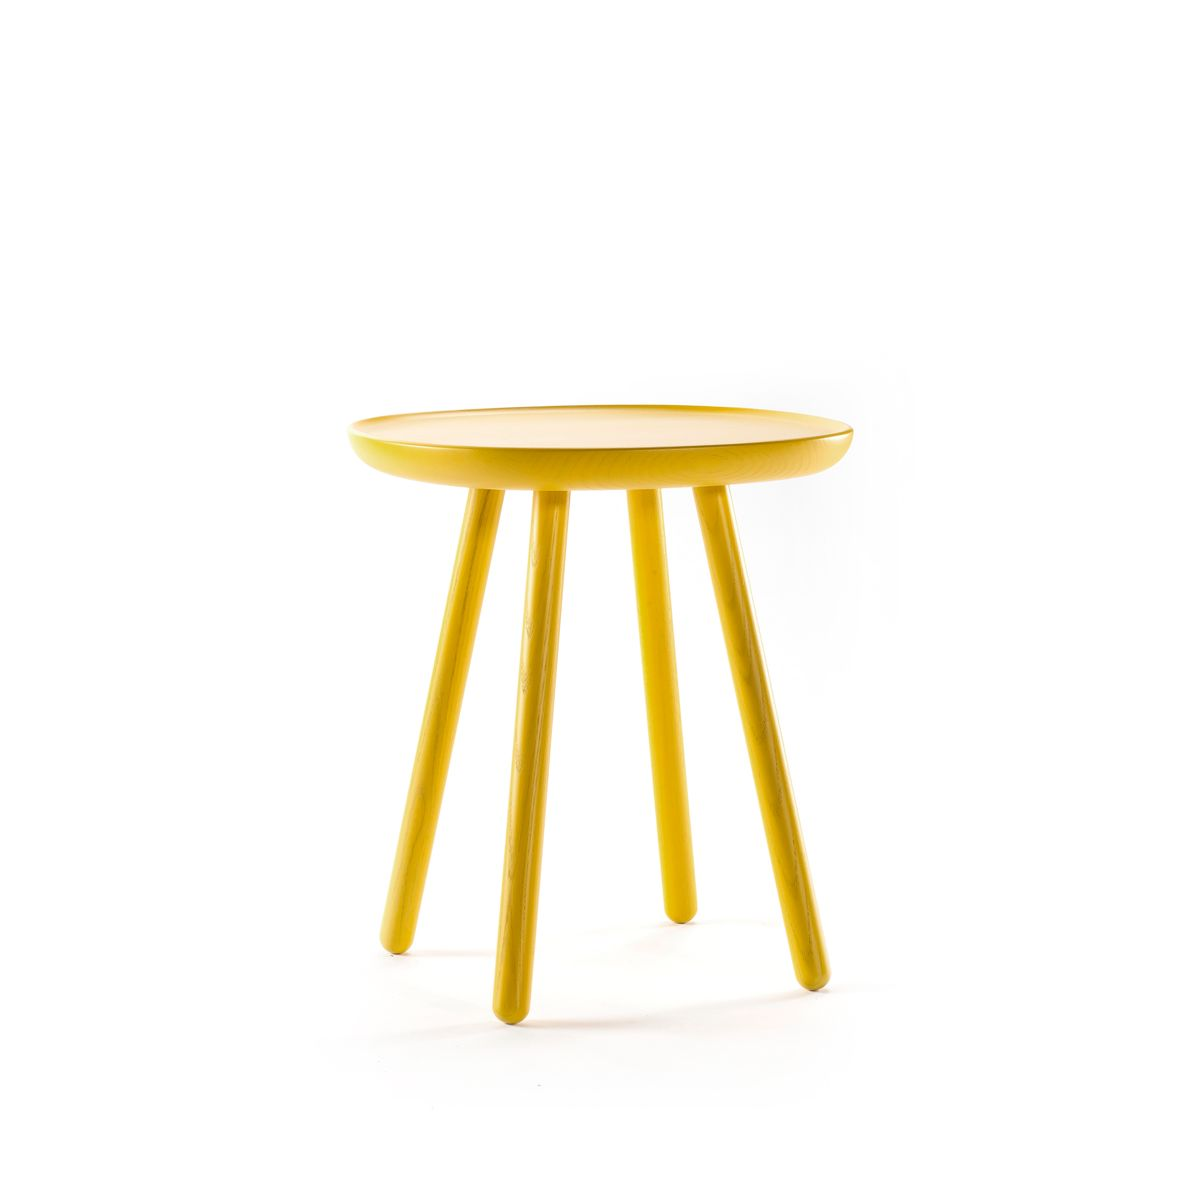 yellow naive side table etc for emko pamono outdoor accent per piece reclaimed wood round small patio with umbrella art deco lamps sauder harbor view pilgrim furniture ikea lamp